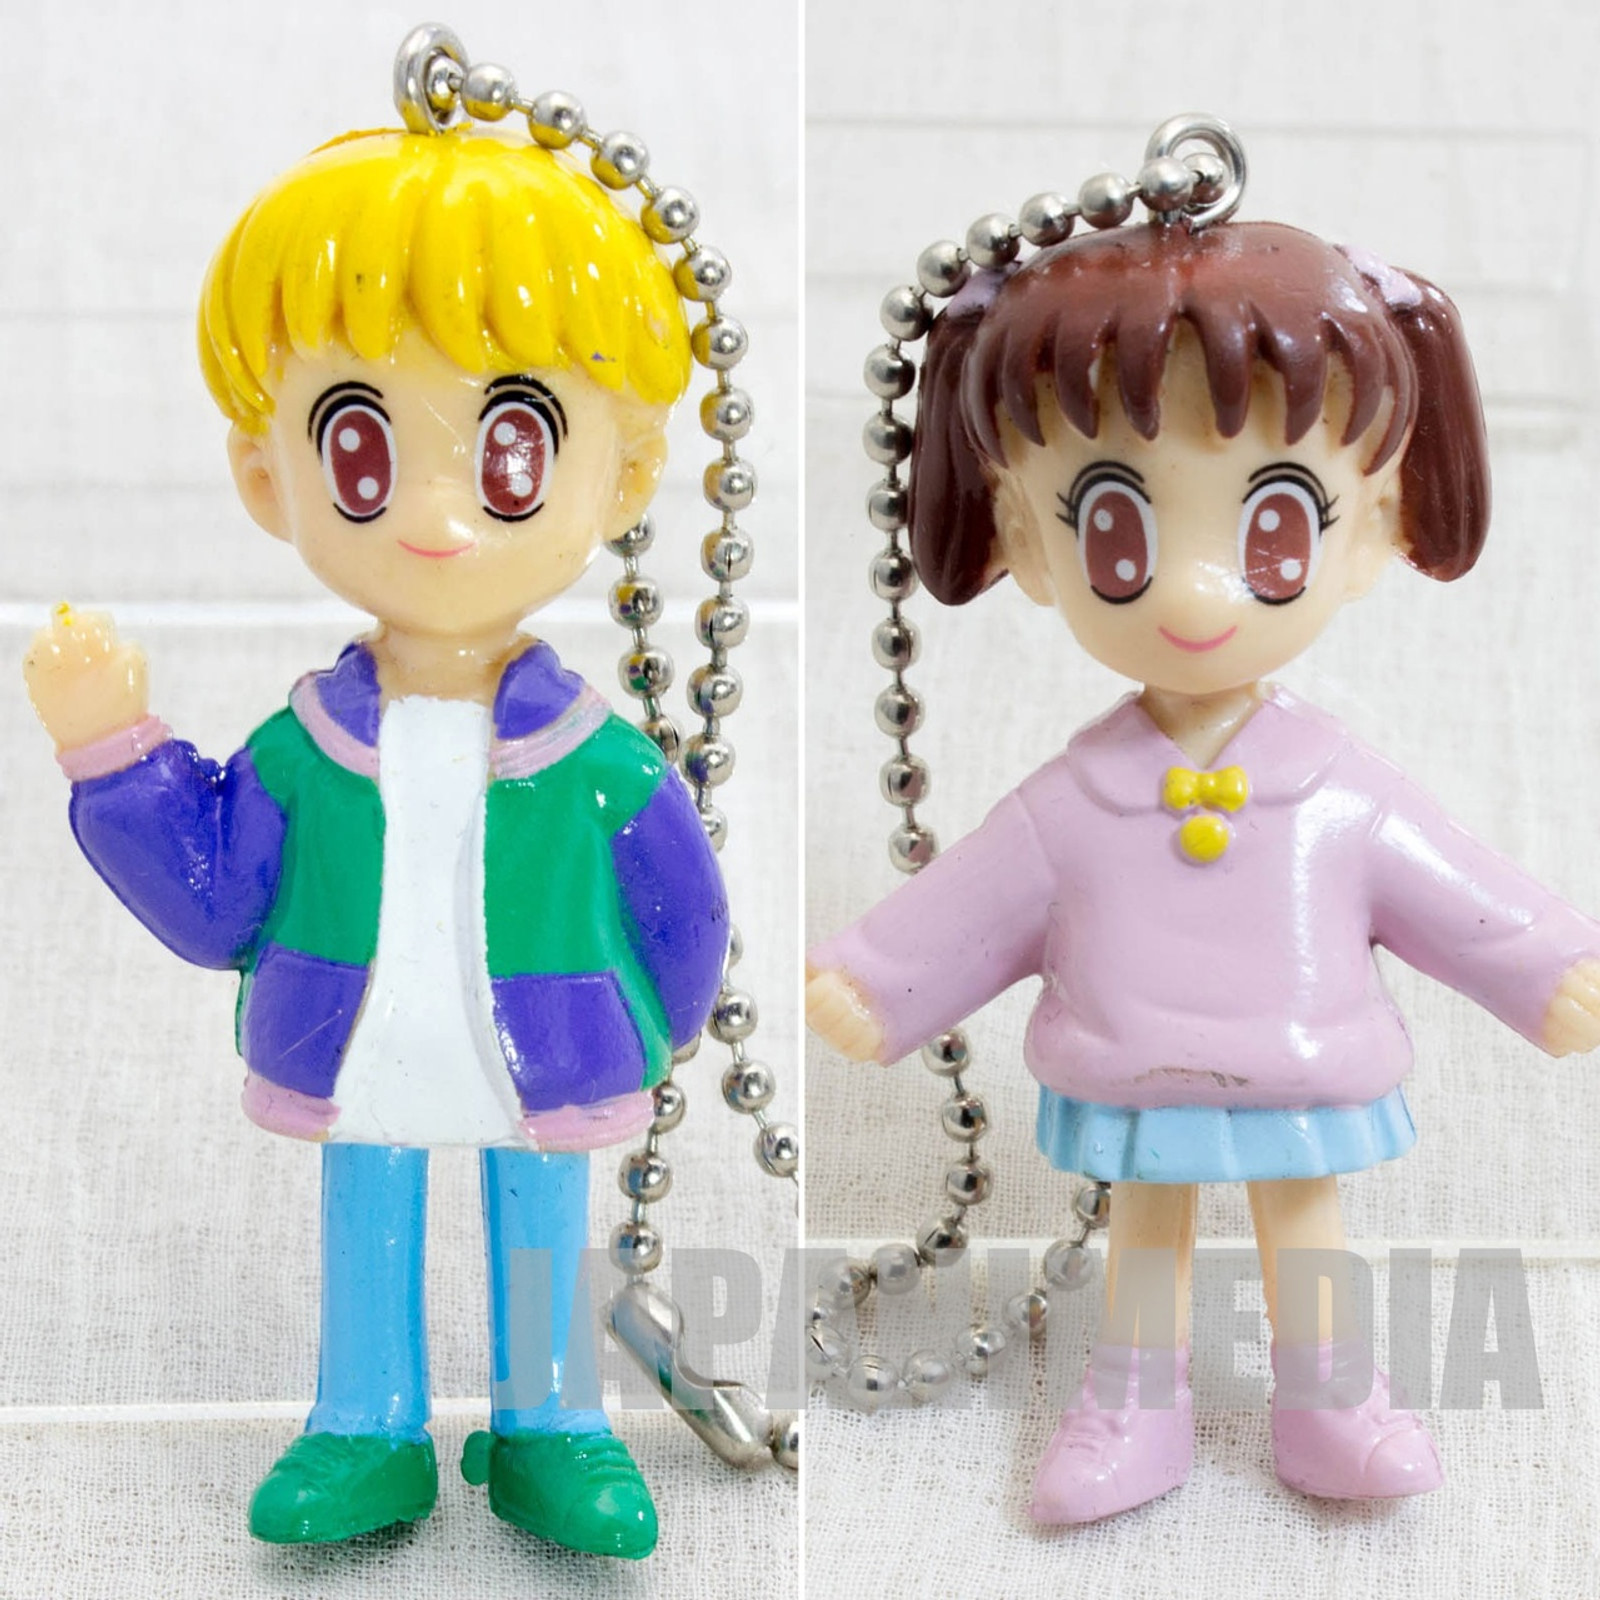 Retro RARE! Marmalade Boy Miki & You Figure Ball key chain BANDAI JAPAN ANIME